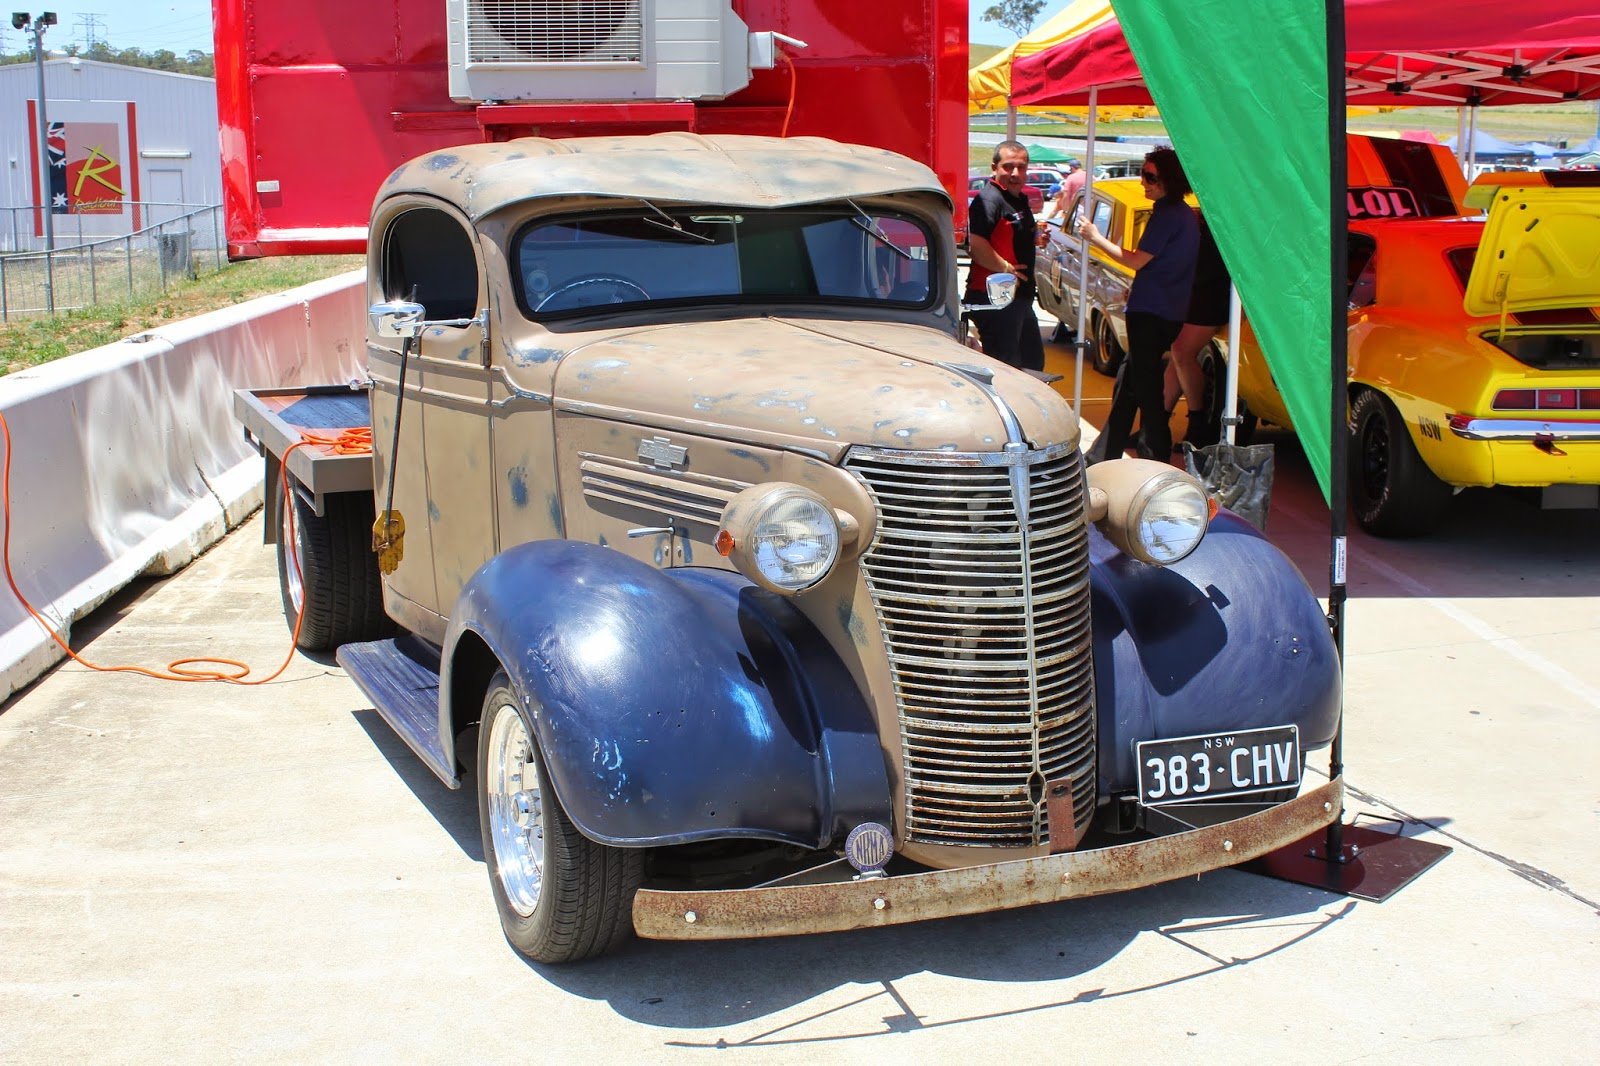 Toyota Celica 2016 >> Aussie Old Parked Cars: 1937 Chevrolet Ute